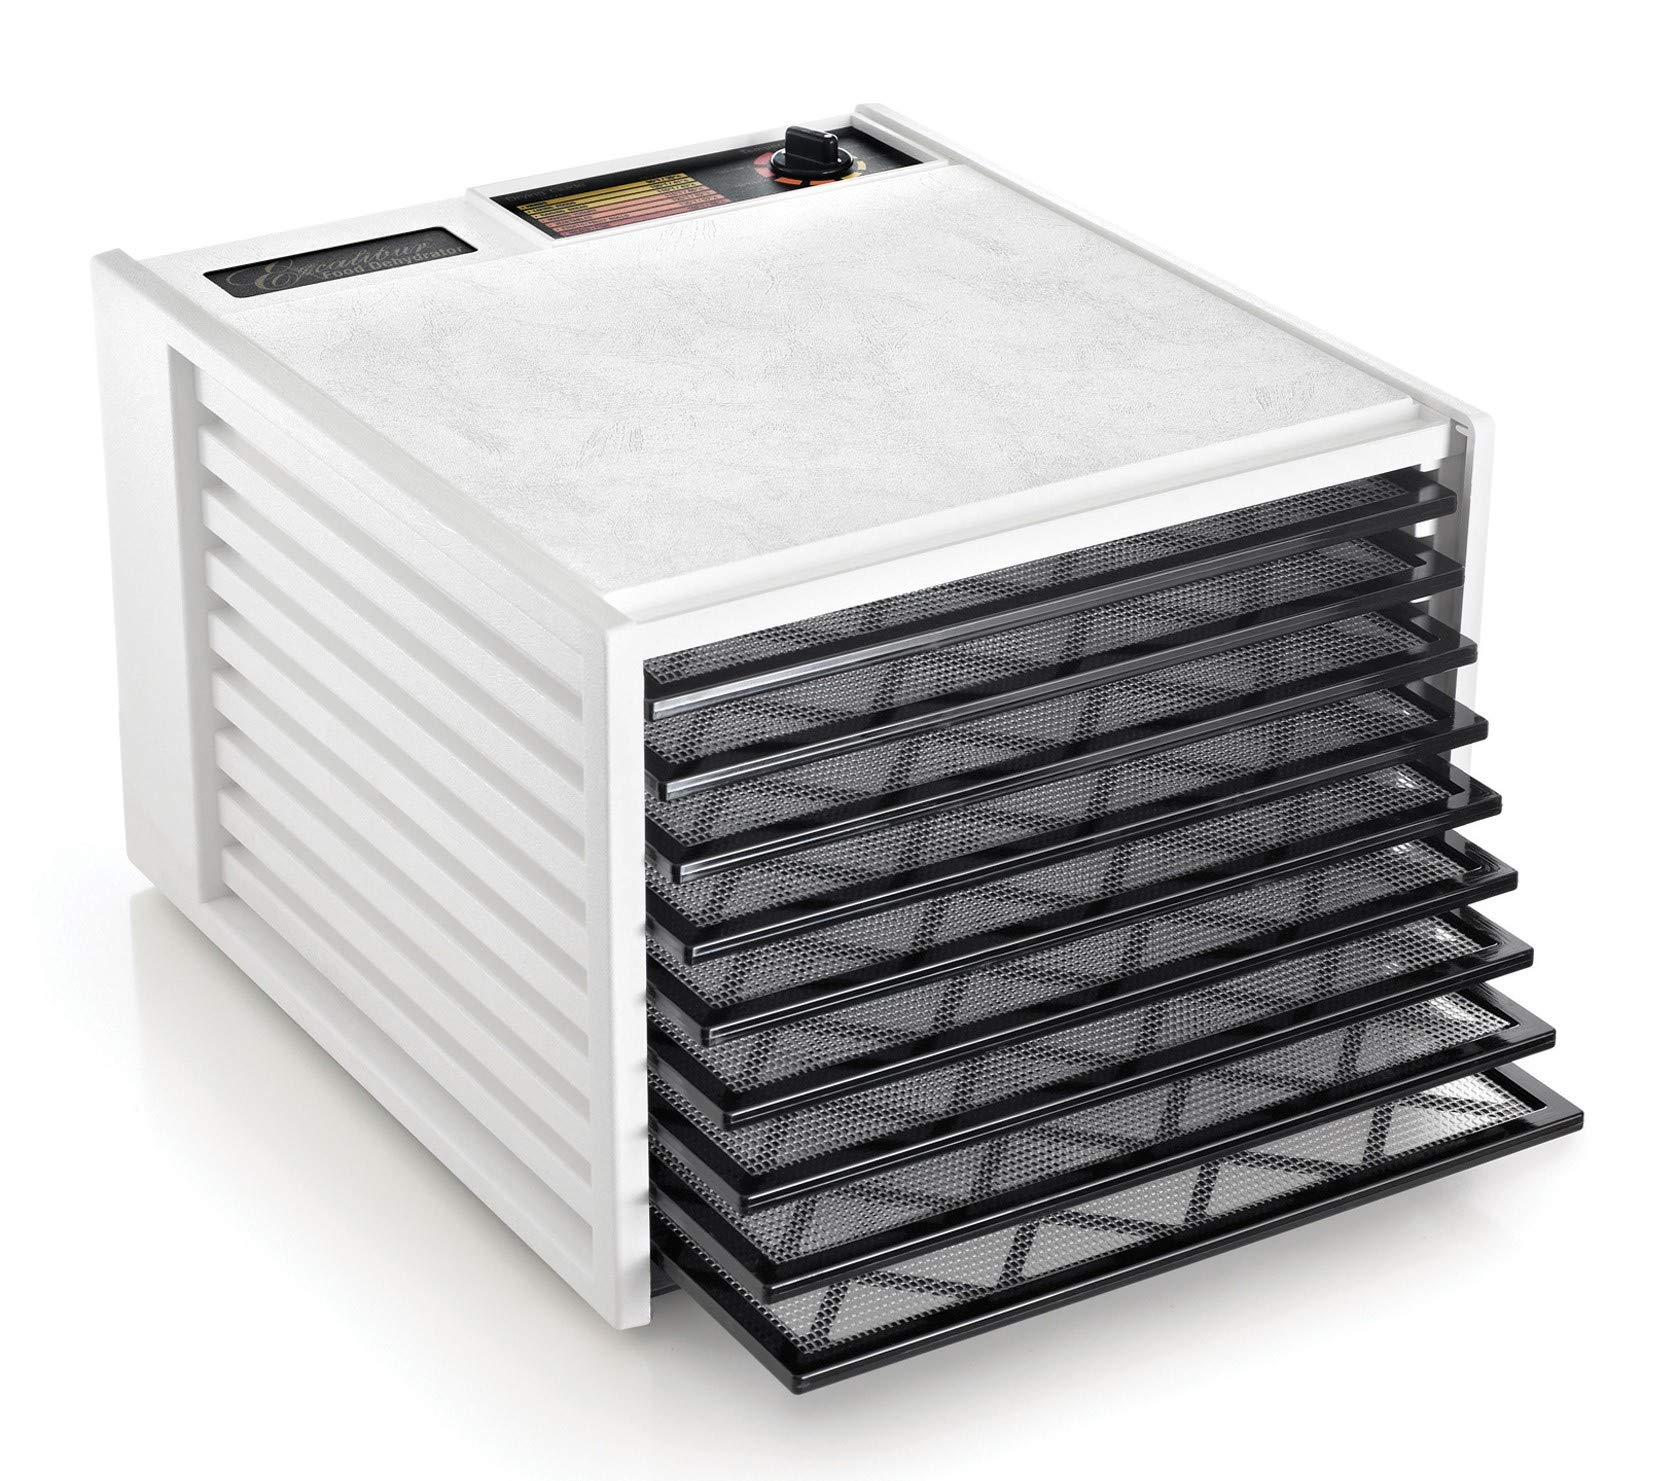 Excalibur 3900W 9-Tray Electric Food Dehydrator with Adjustable Thermostat Accurate Temperature Control Faster and Efficient Drying Includes Guide to Dehydration Made in USA, 9-Tray, White by Excalibur